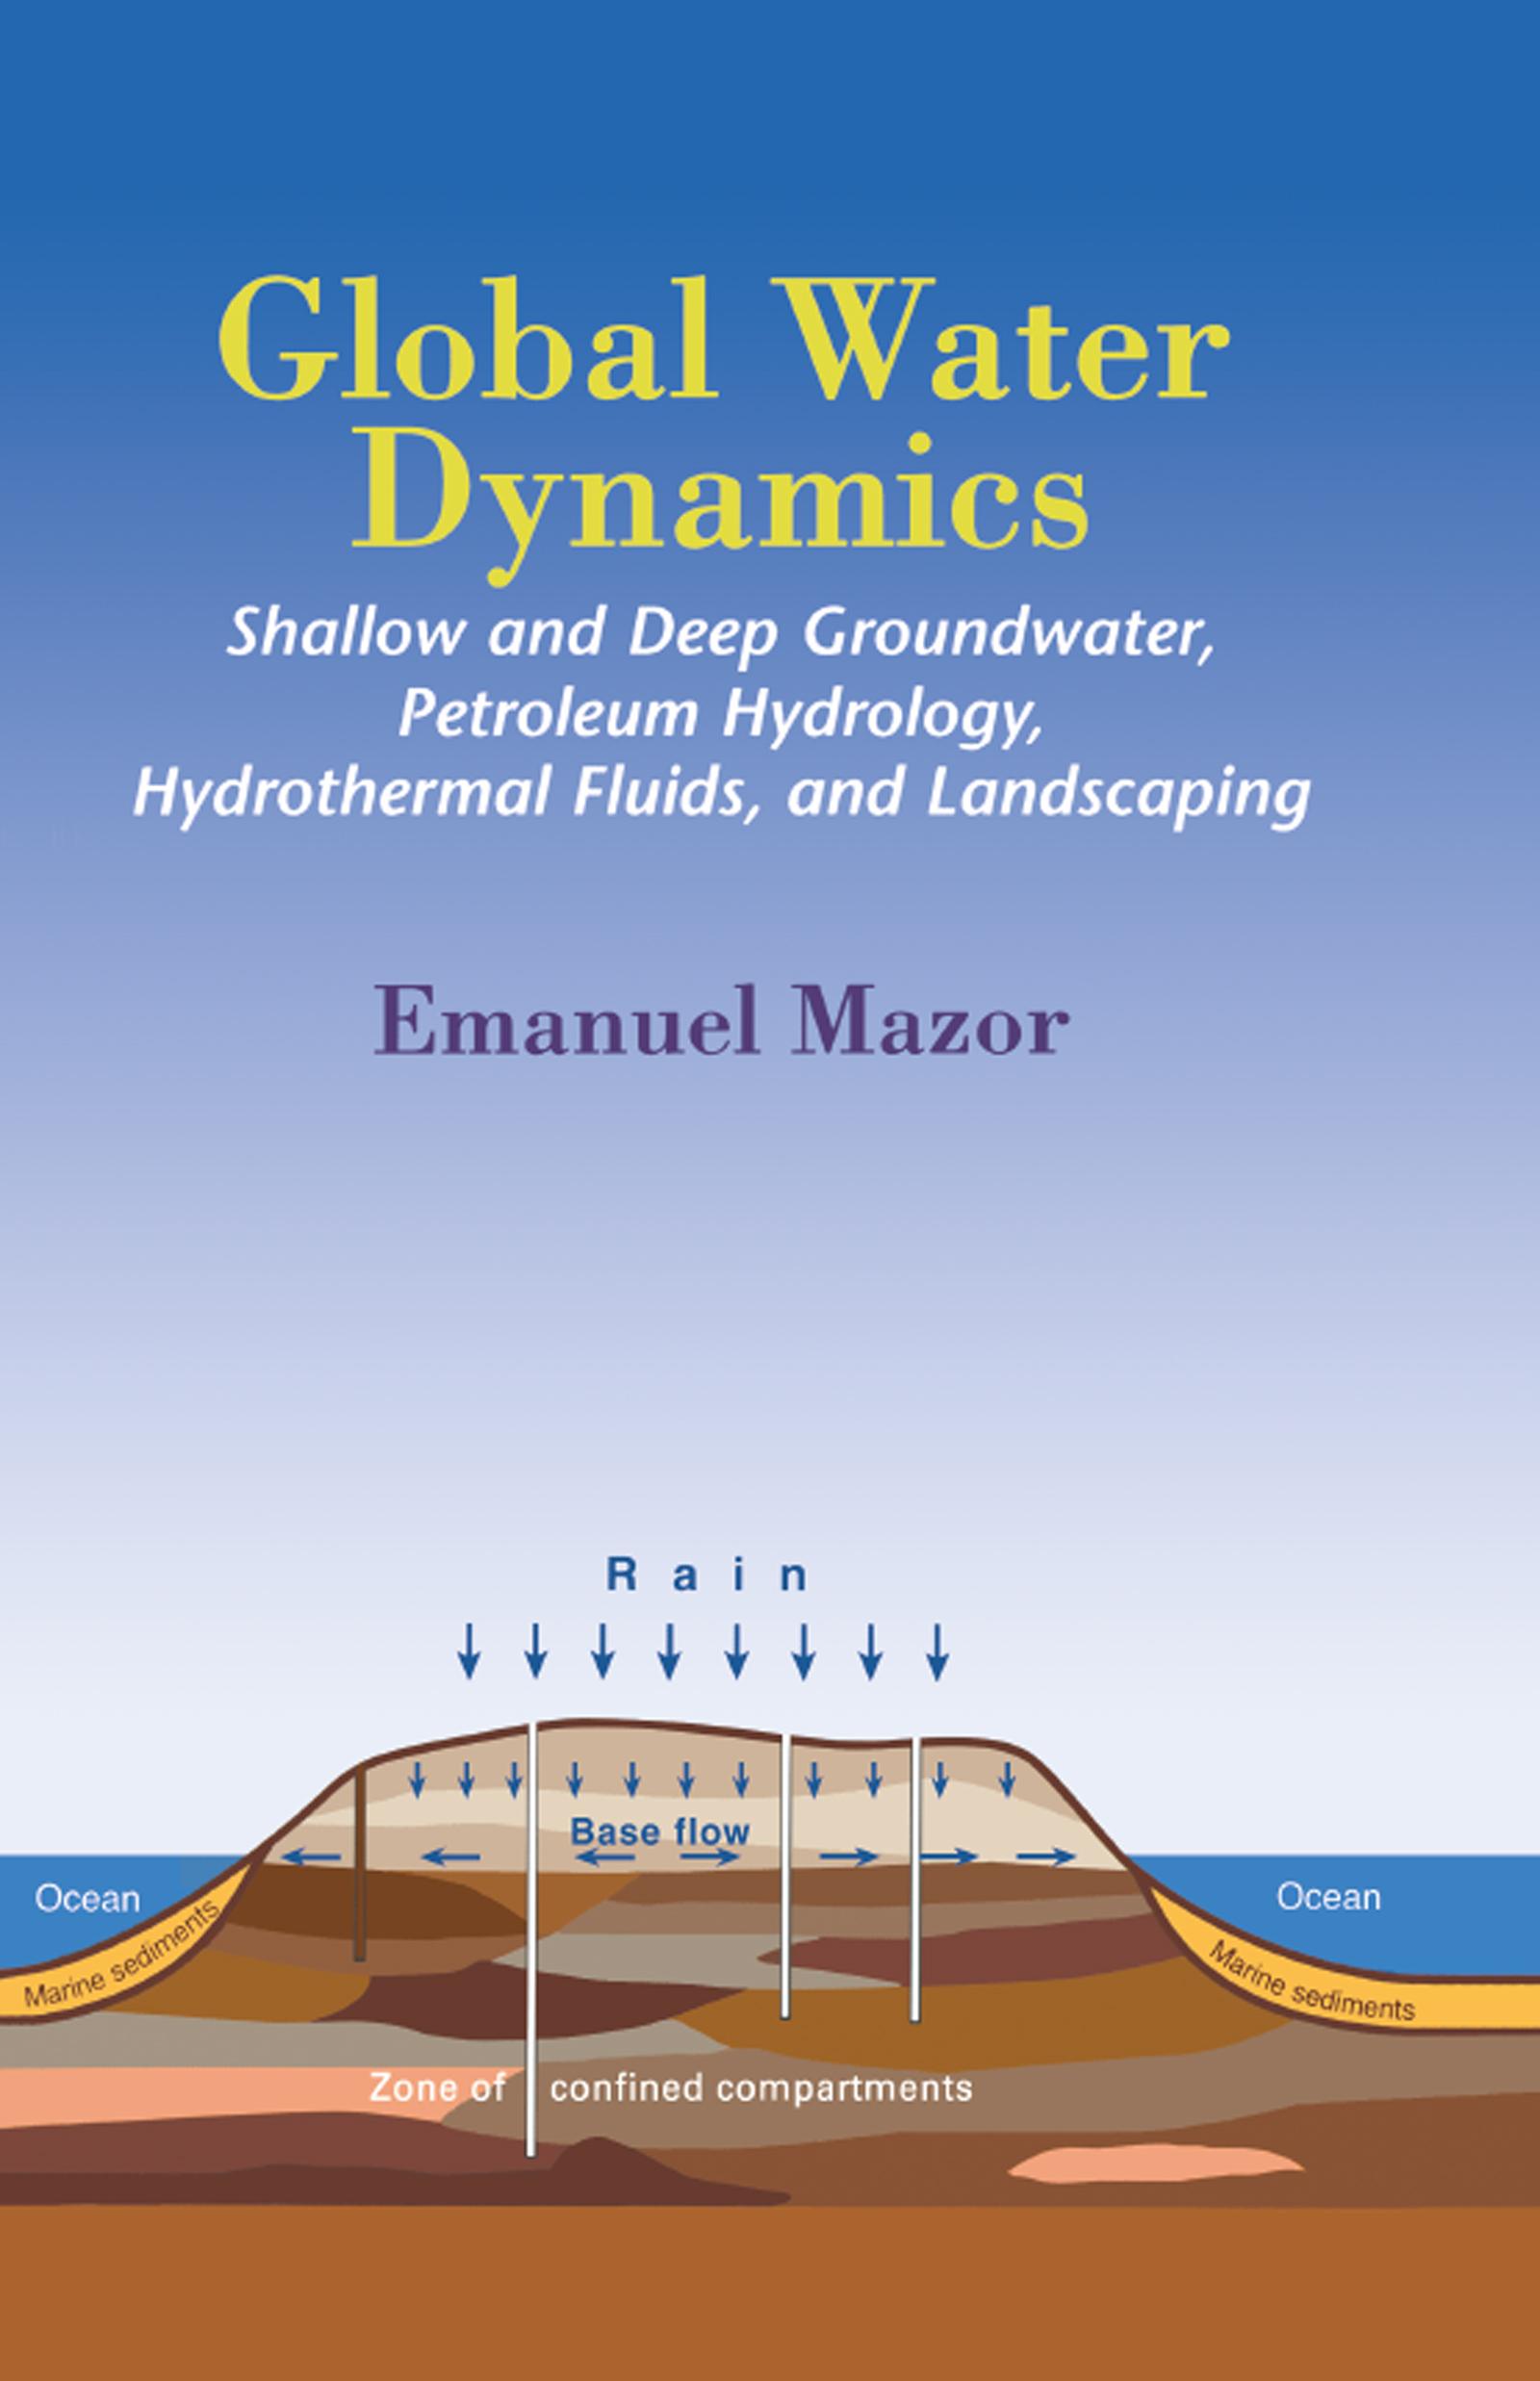 Global Water Dynamics: Shallow and Deep Groundwater, Petroleum Hydrology, Hydrothermal Fluids, and Landscaping book cover